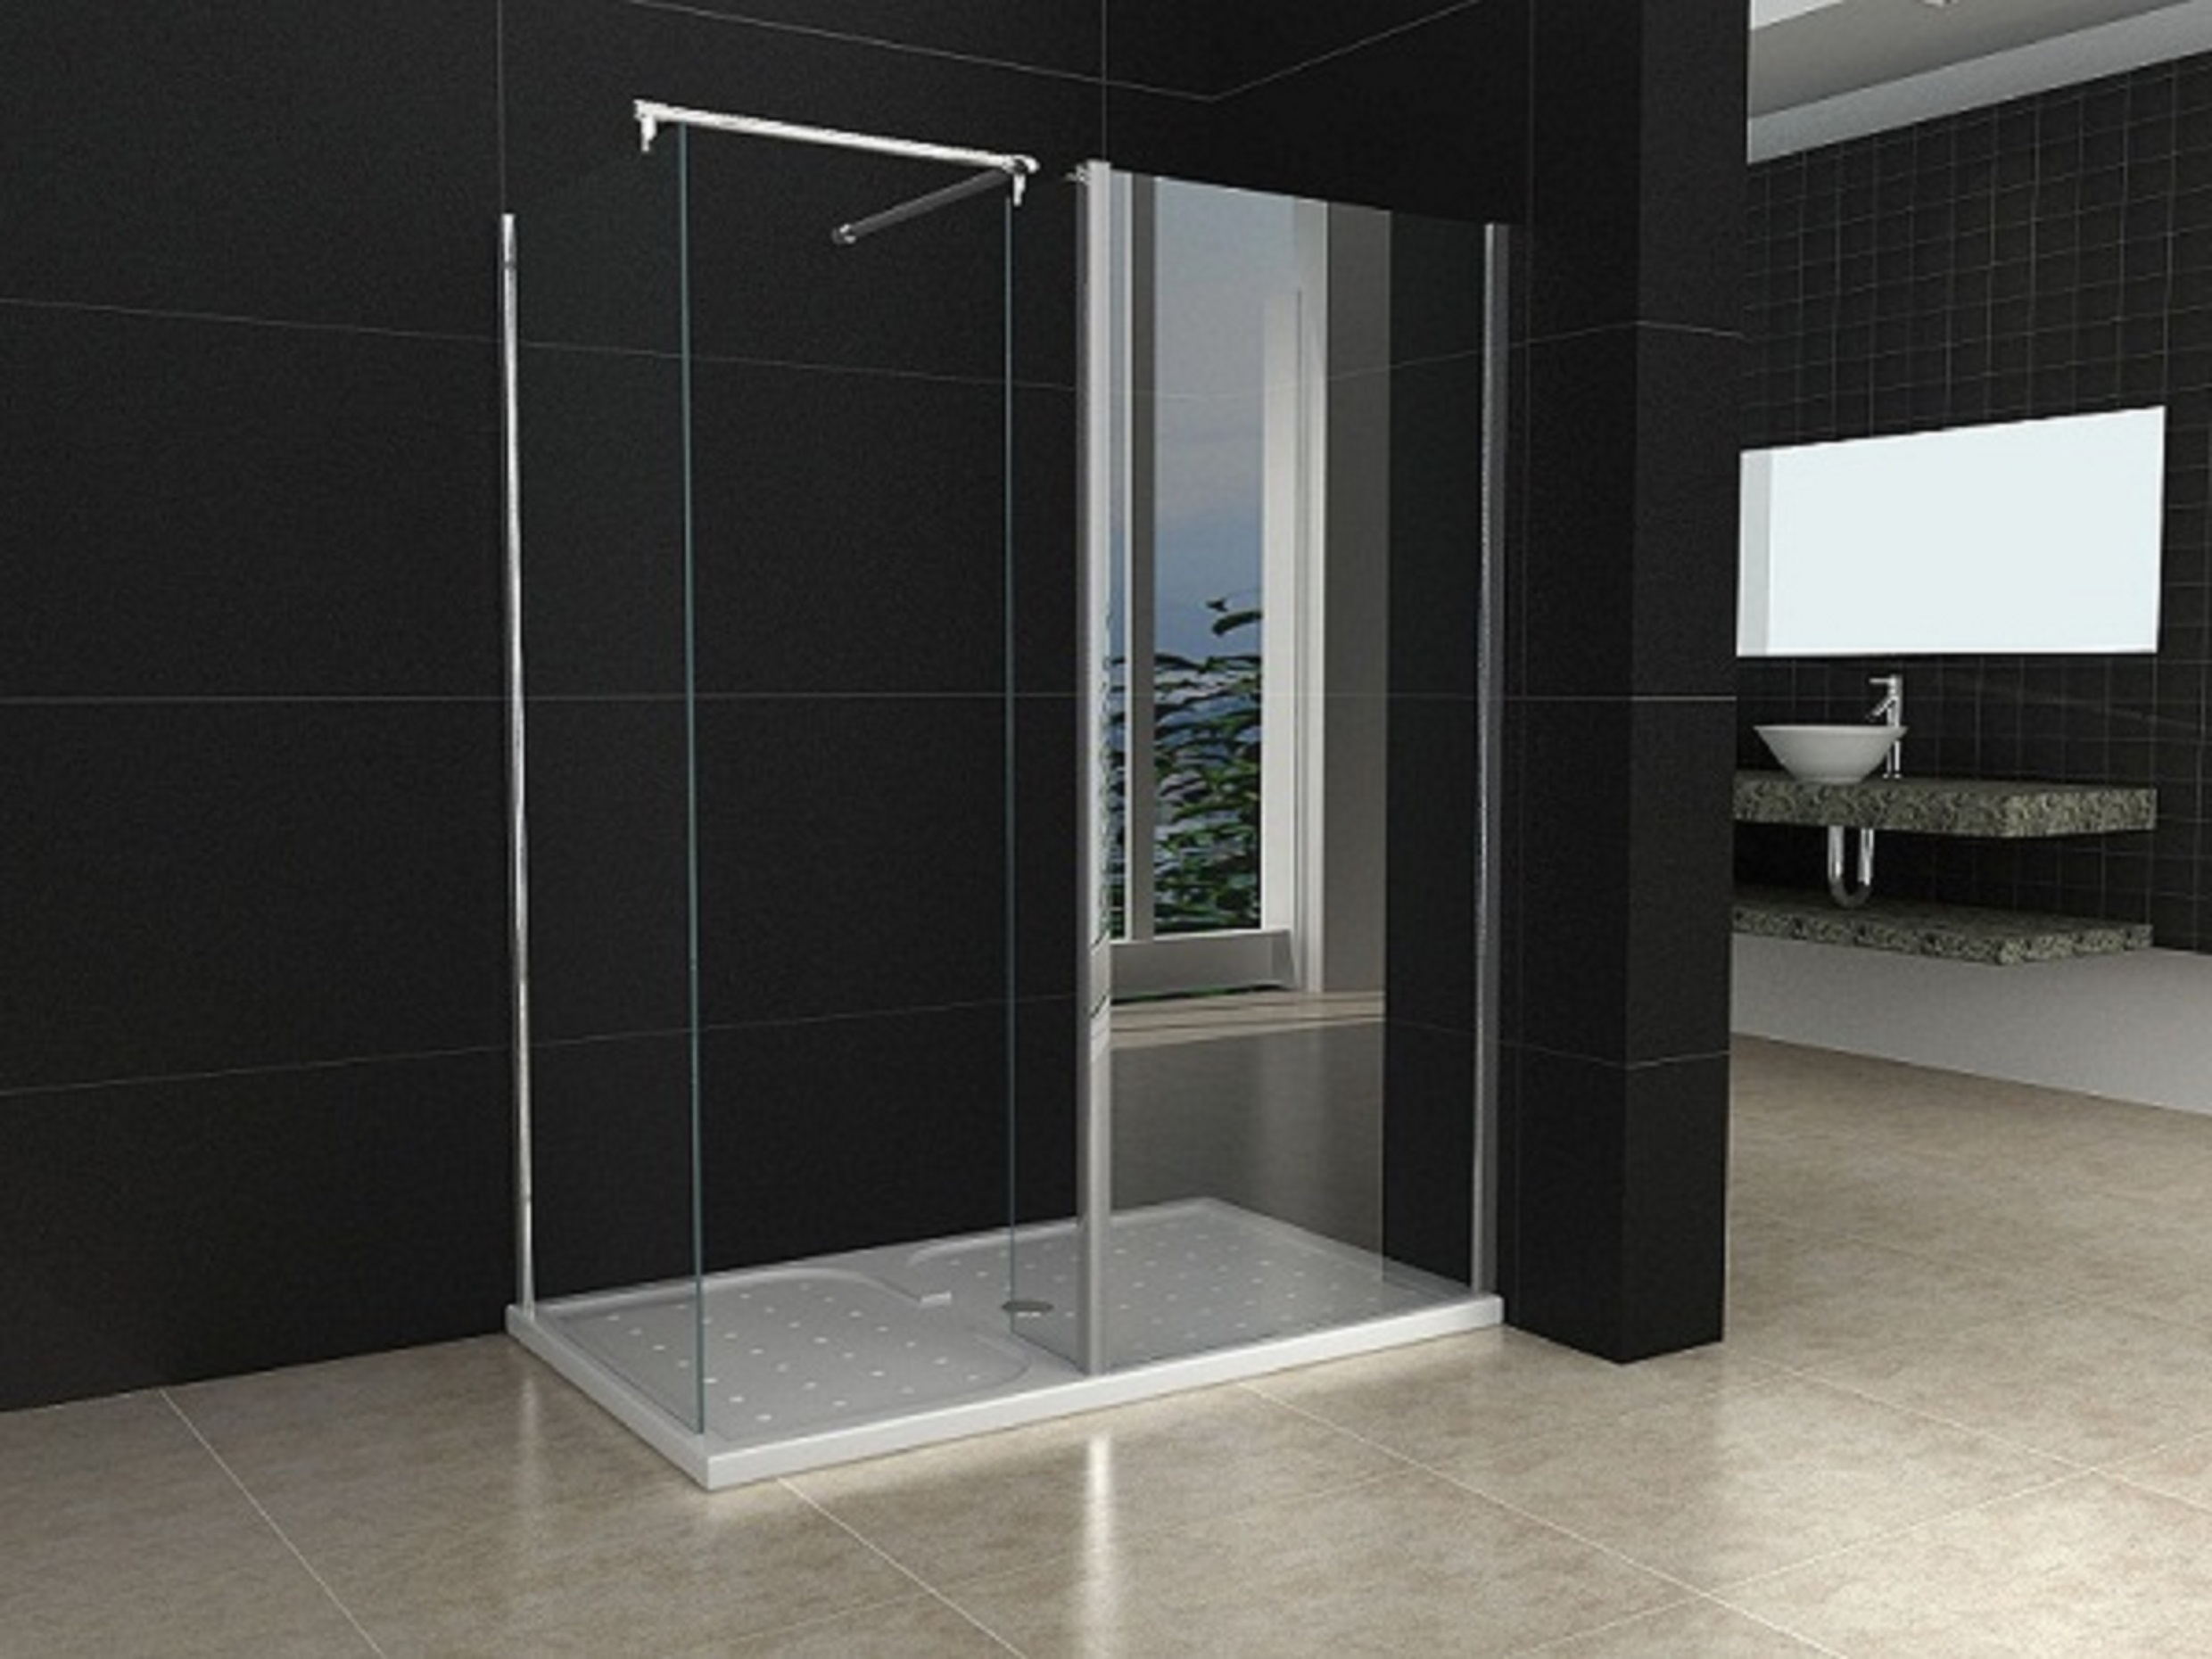 1200x800mm walk in shower enclosure door shower tray ForWalk In Shower Tray